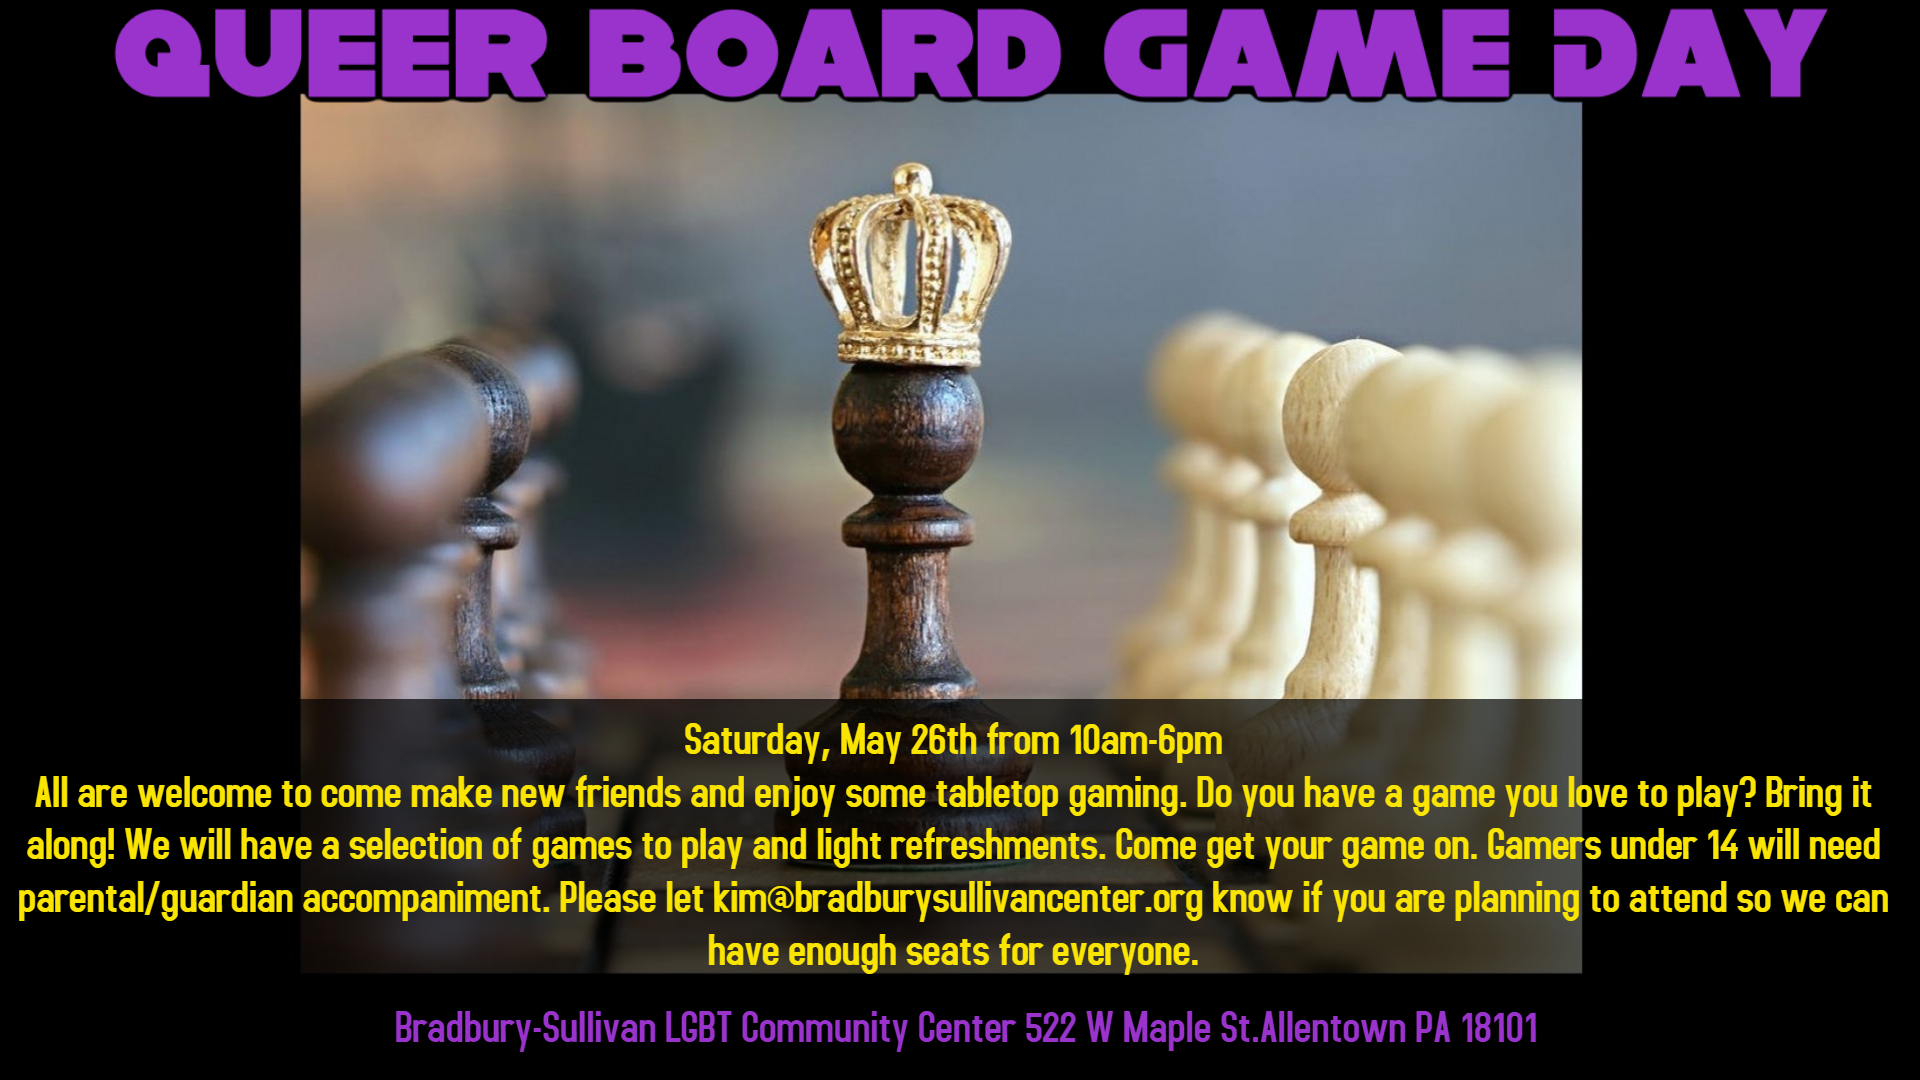 Queer Board Game Day